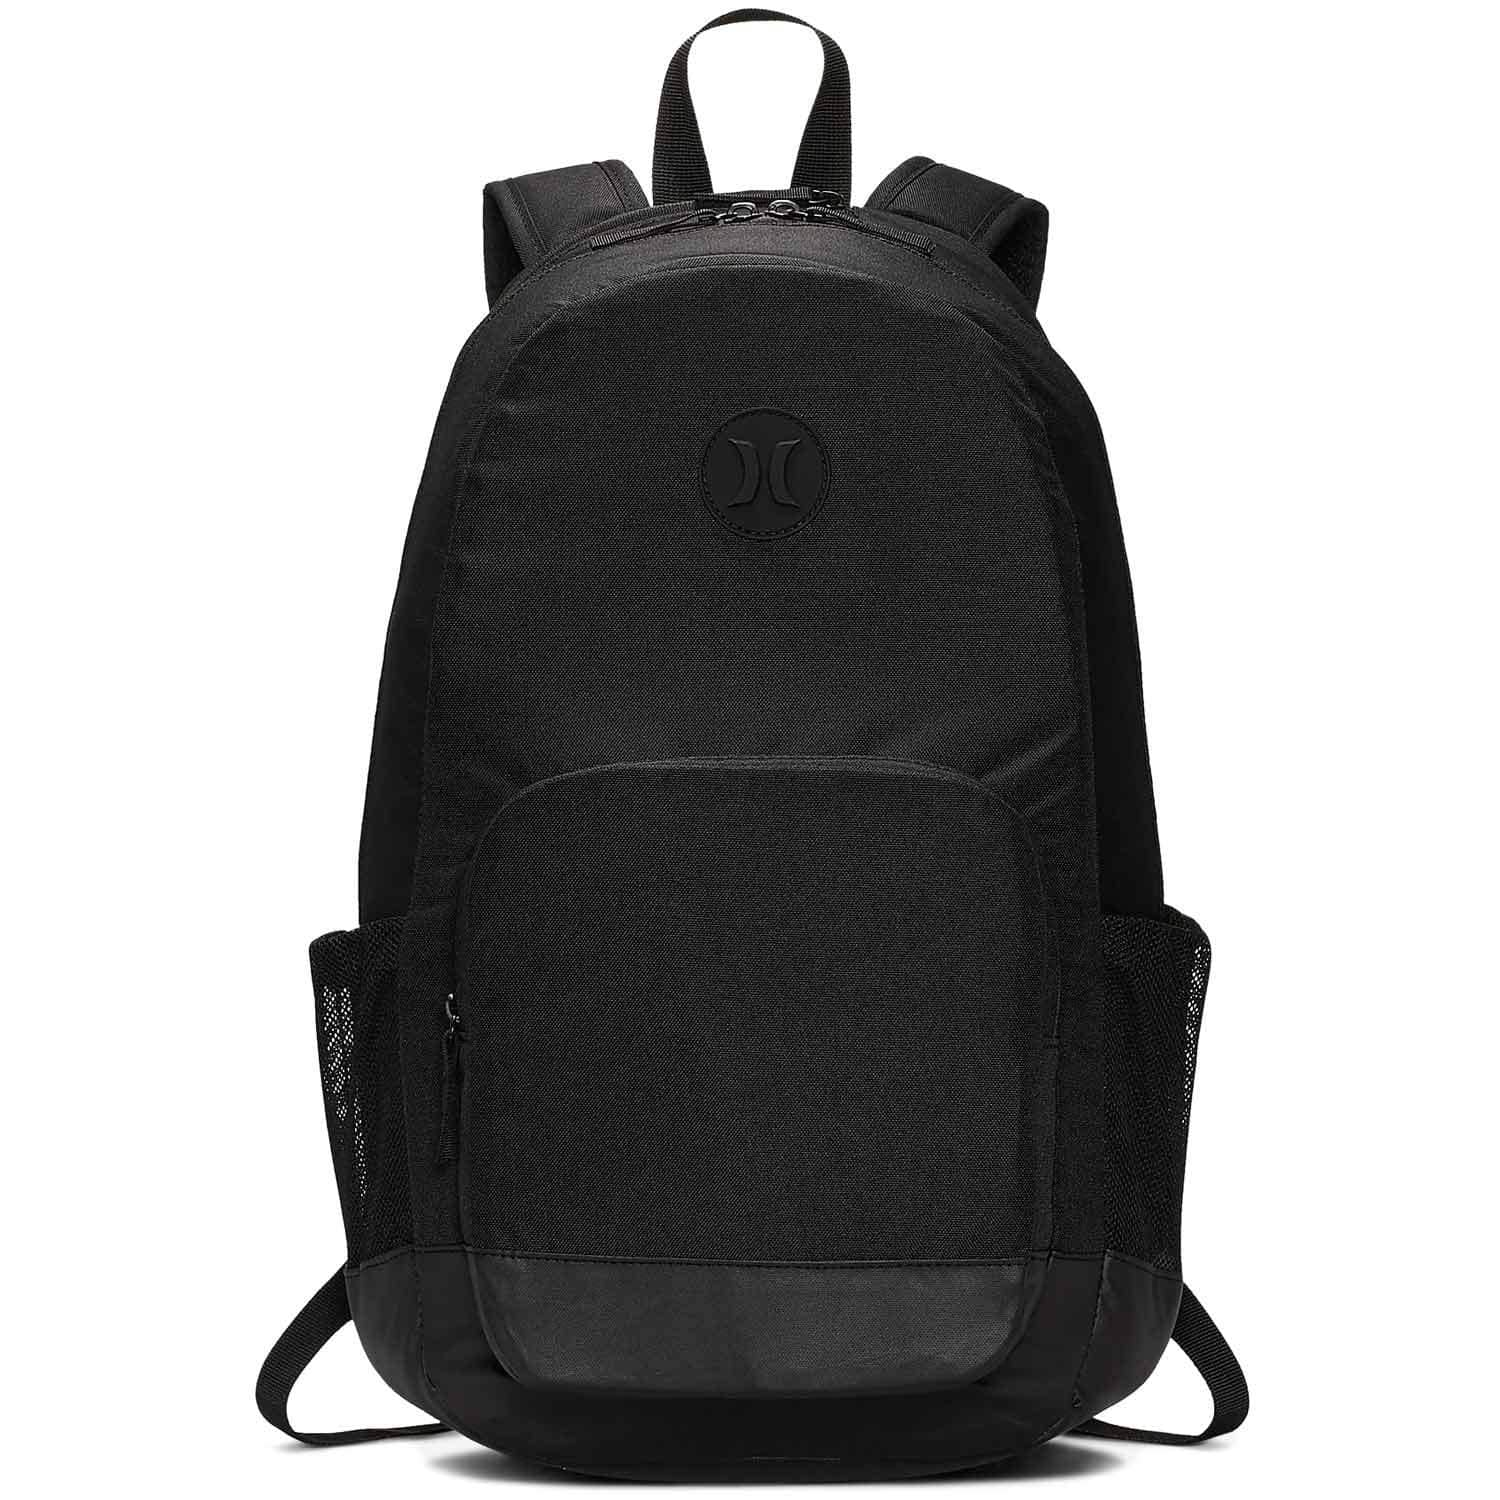 Hurley Renegade II Solid Backpack - Black - O/S (one size)